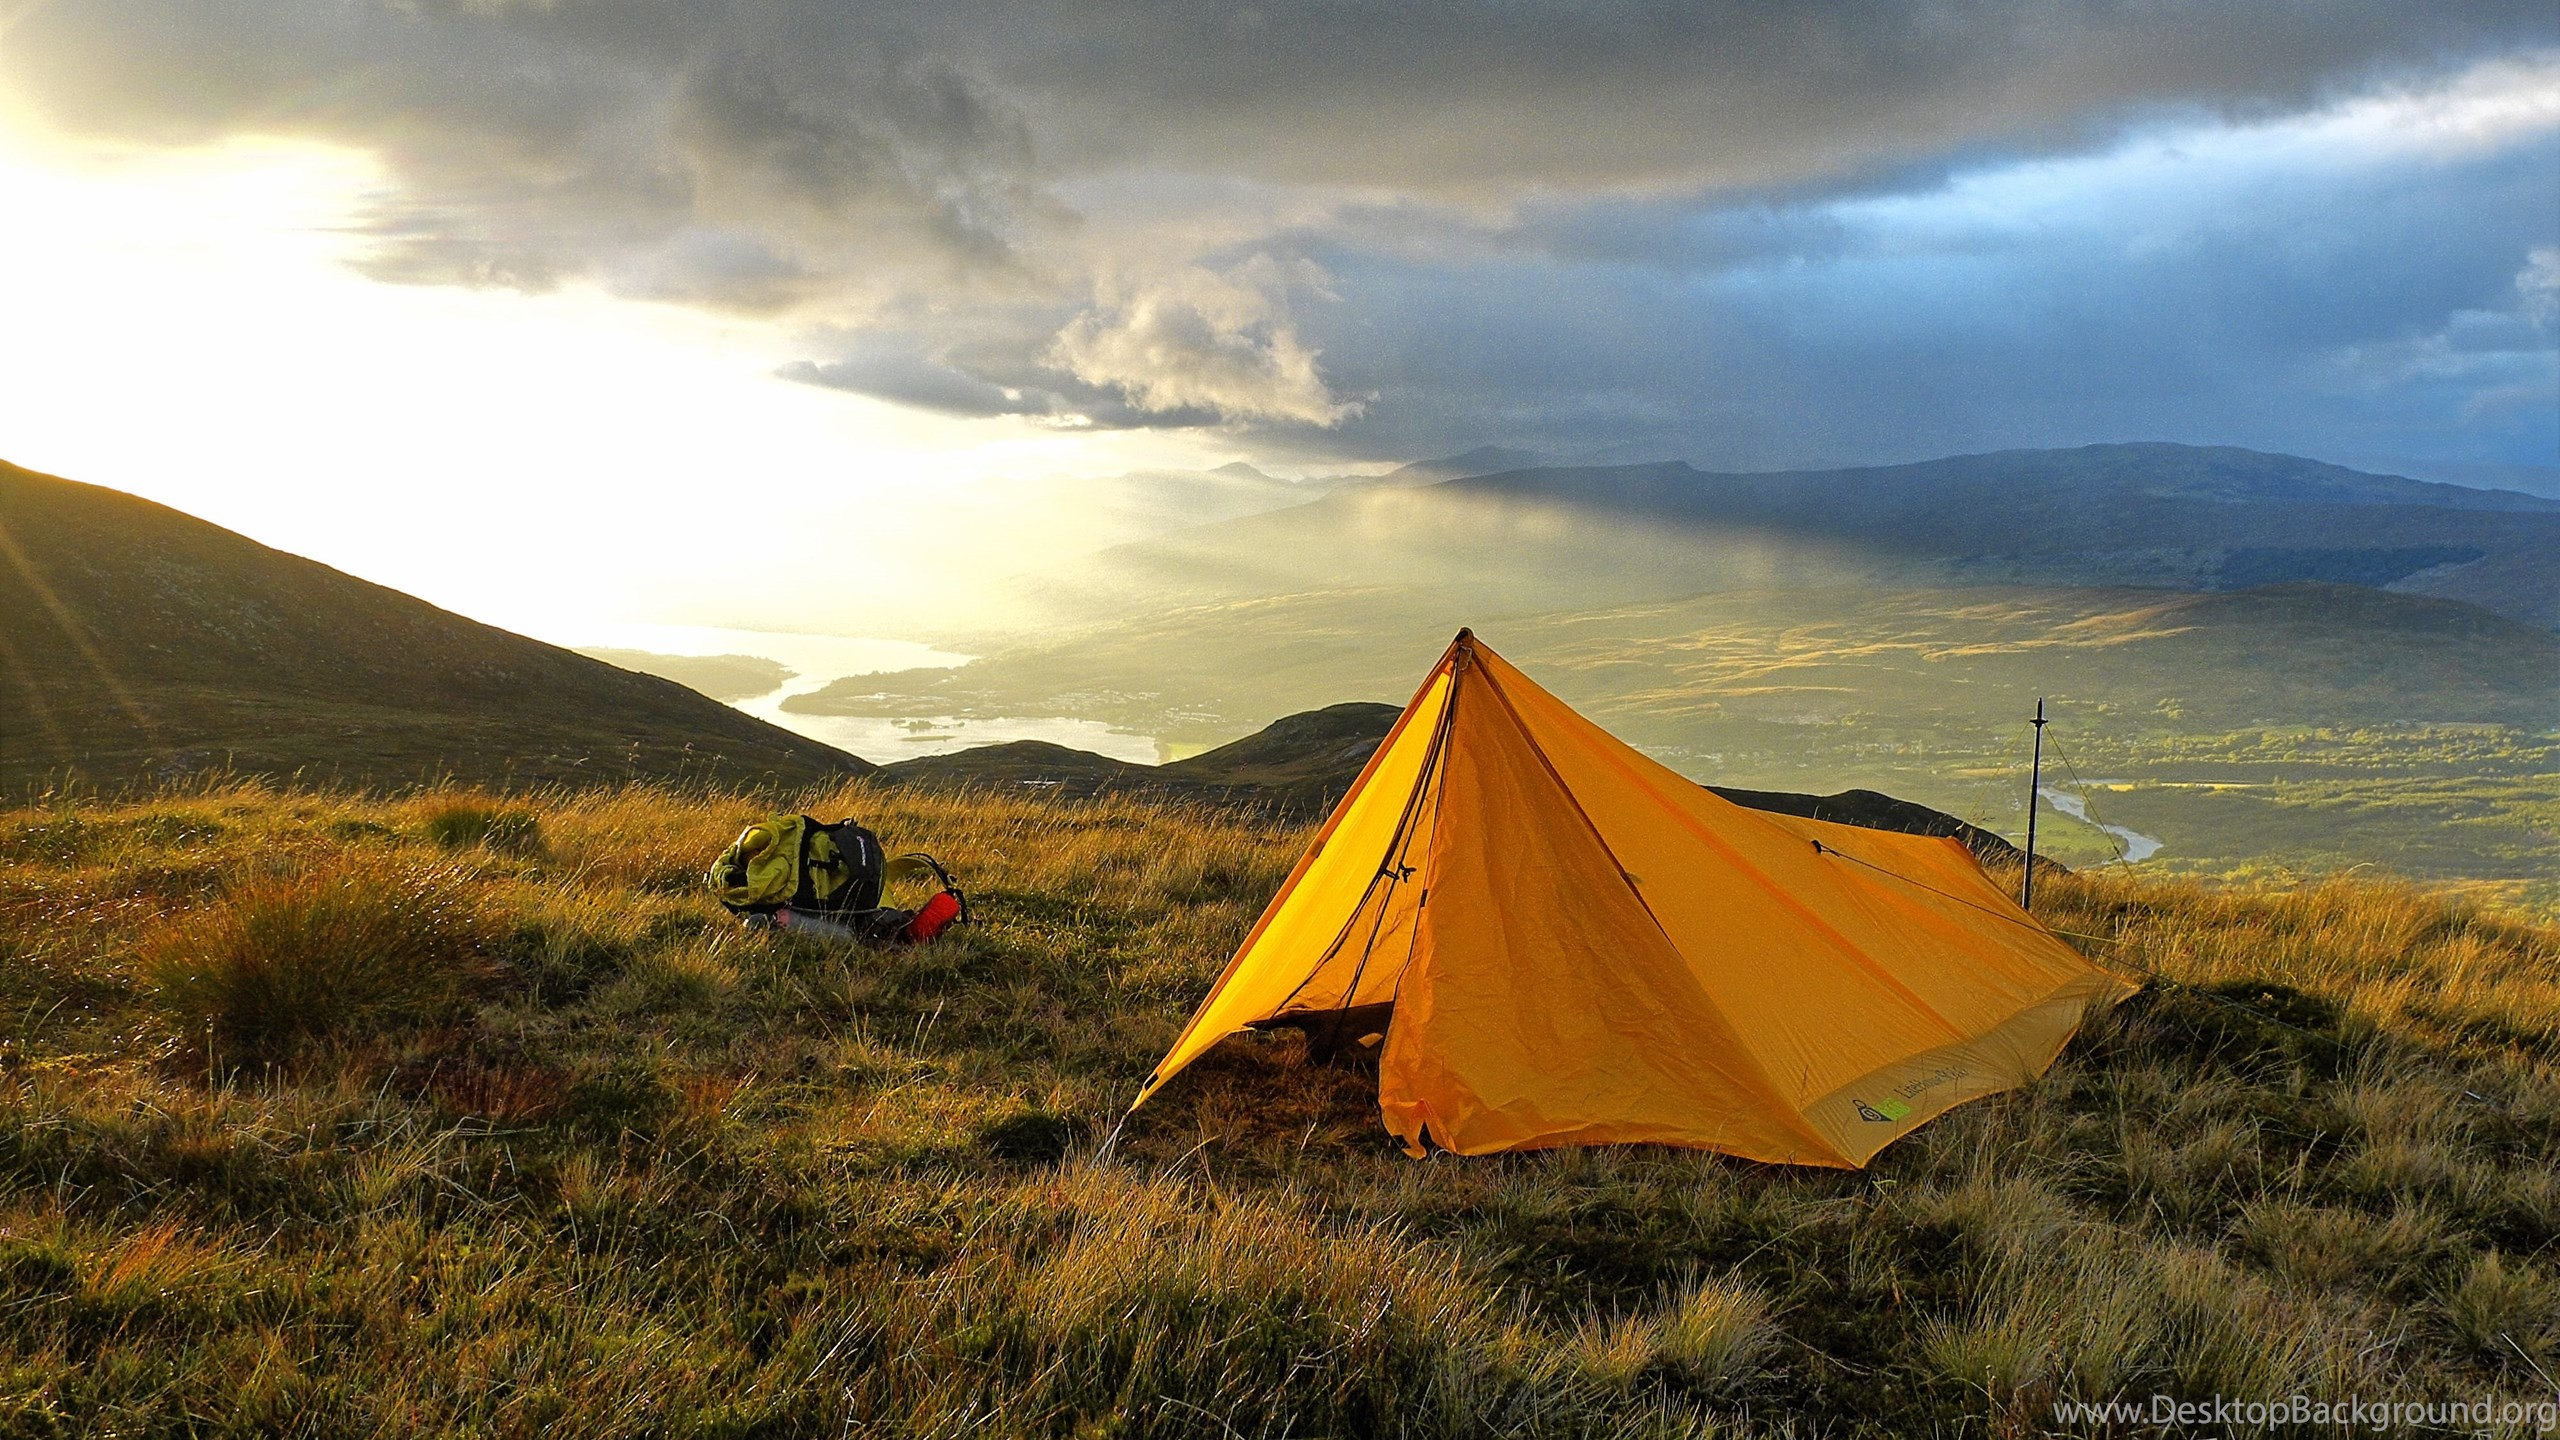 7 Camping Hd Wallpapers Desktop Background